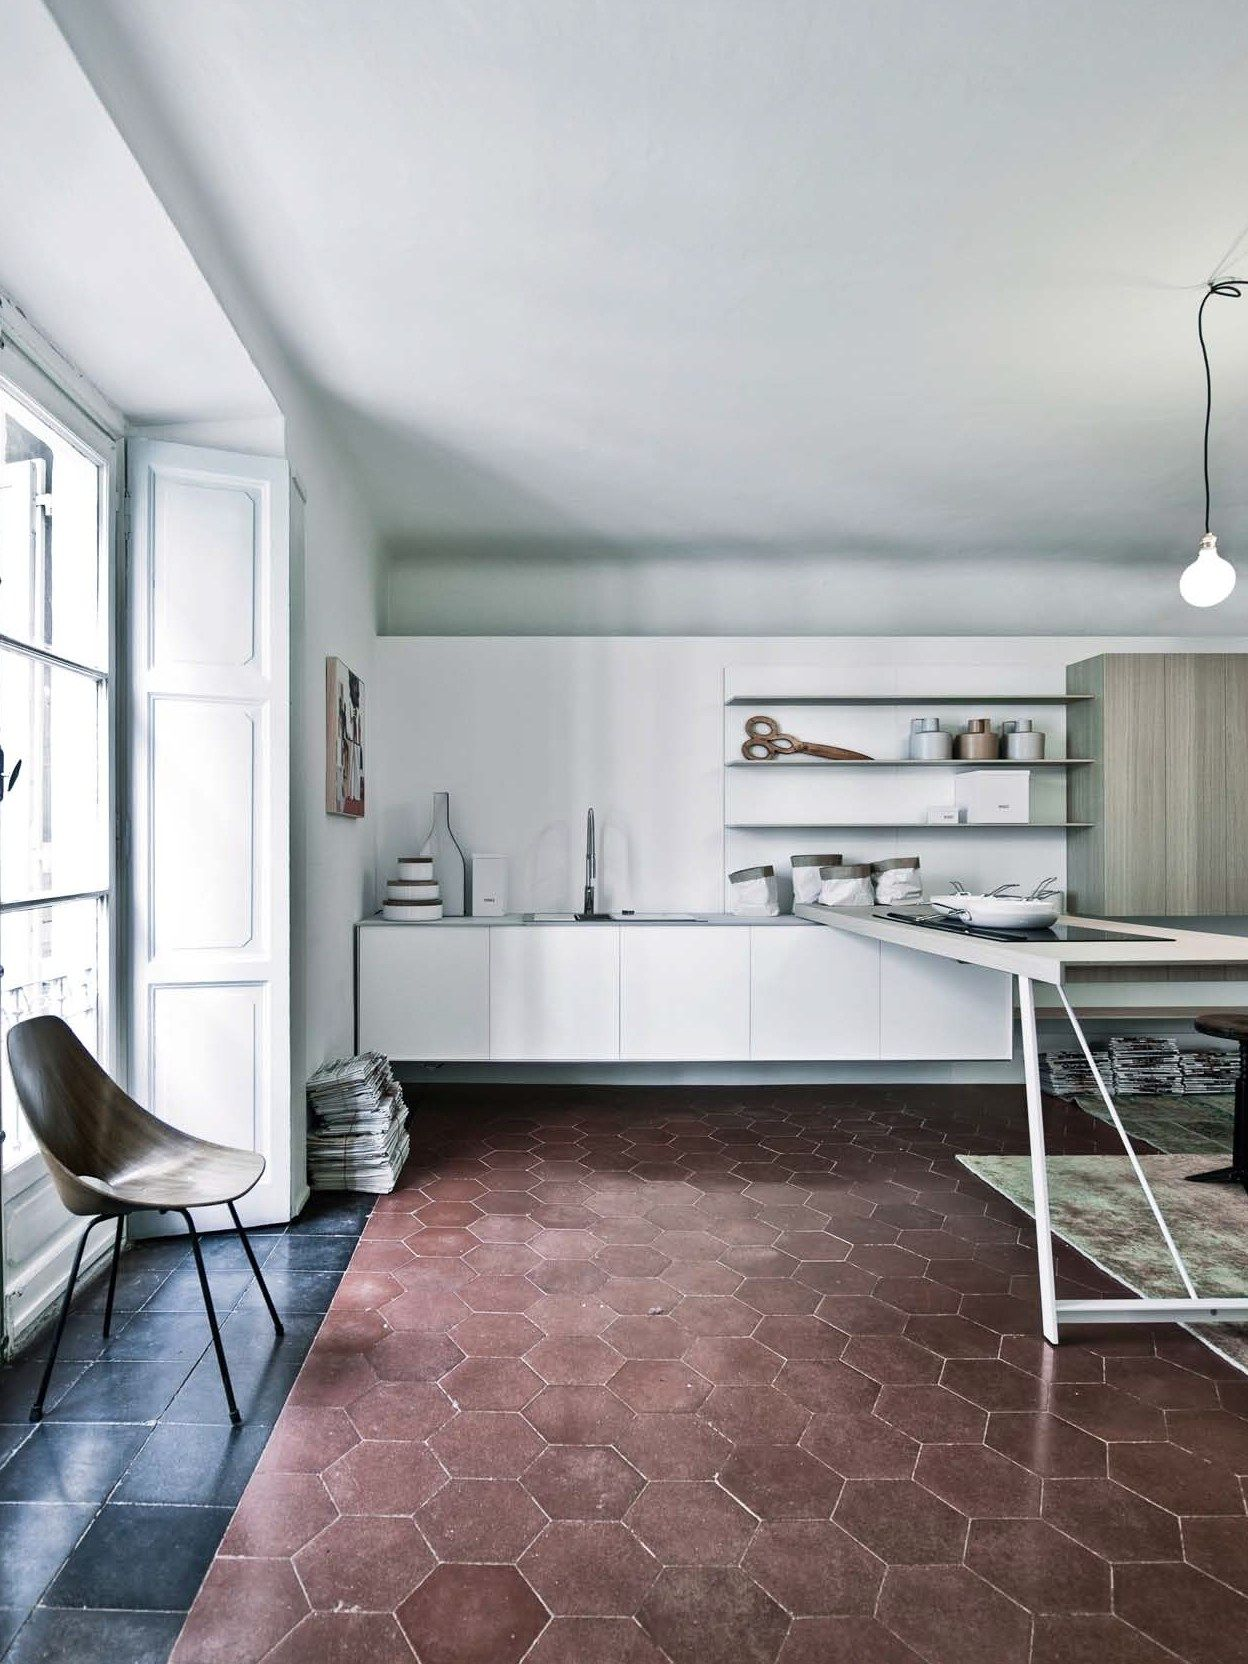 Kitchen With Peninsula Without Handles KALEA   COMPOSITION 8 By Cesar  Arredamenti